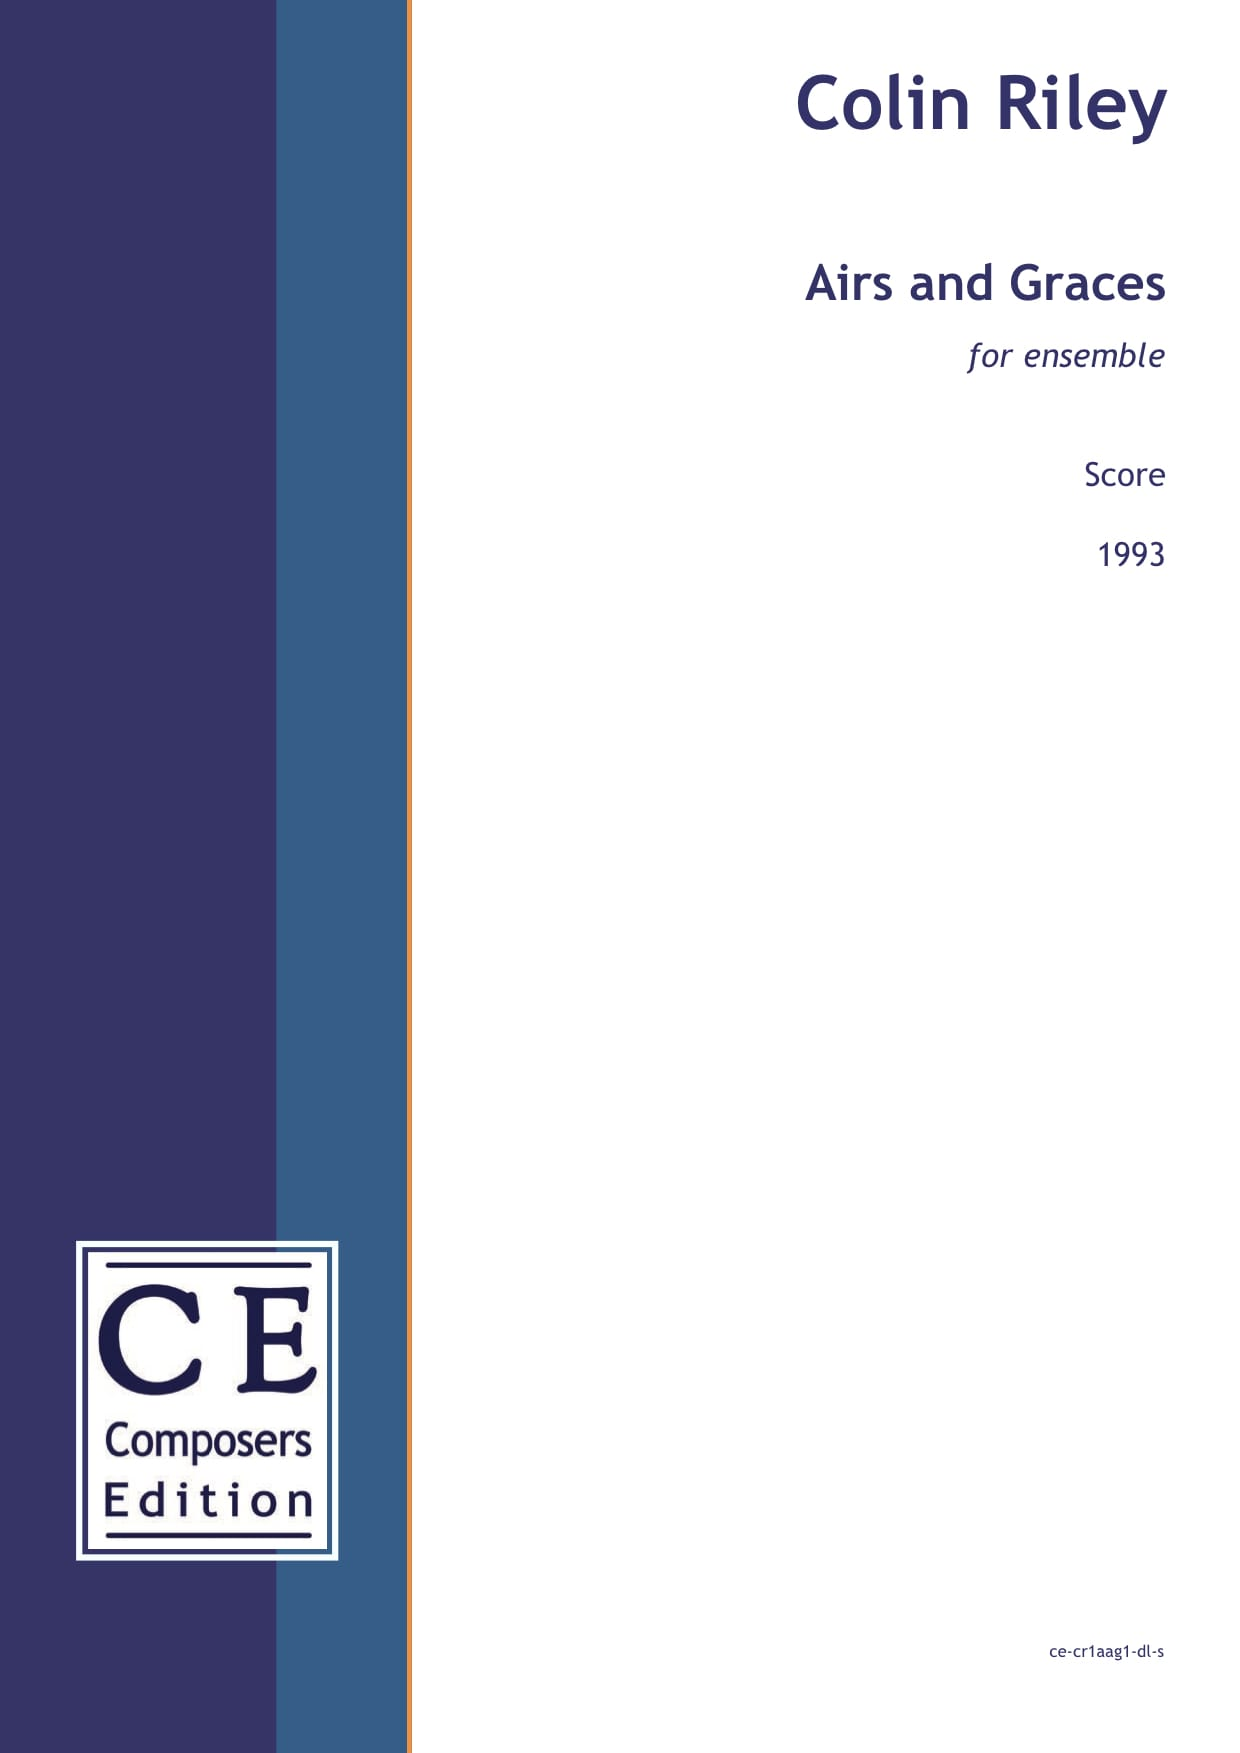 Colin Riley: Airs and Graces for ensemble